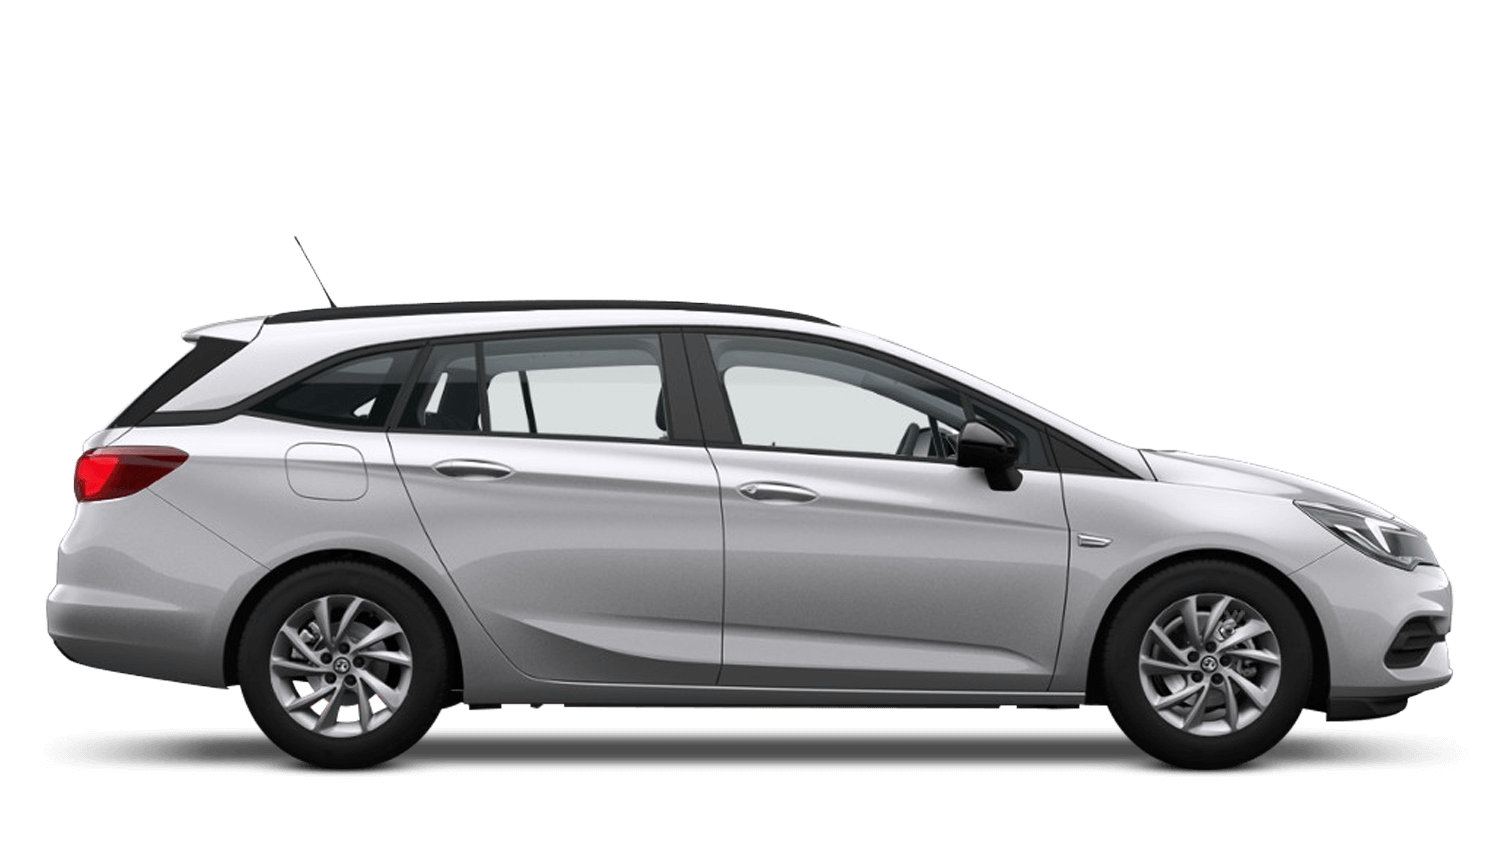 Sovereign Silver (Metallic) New Vauxhall Astra Sports Tourer